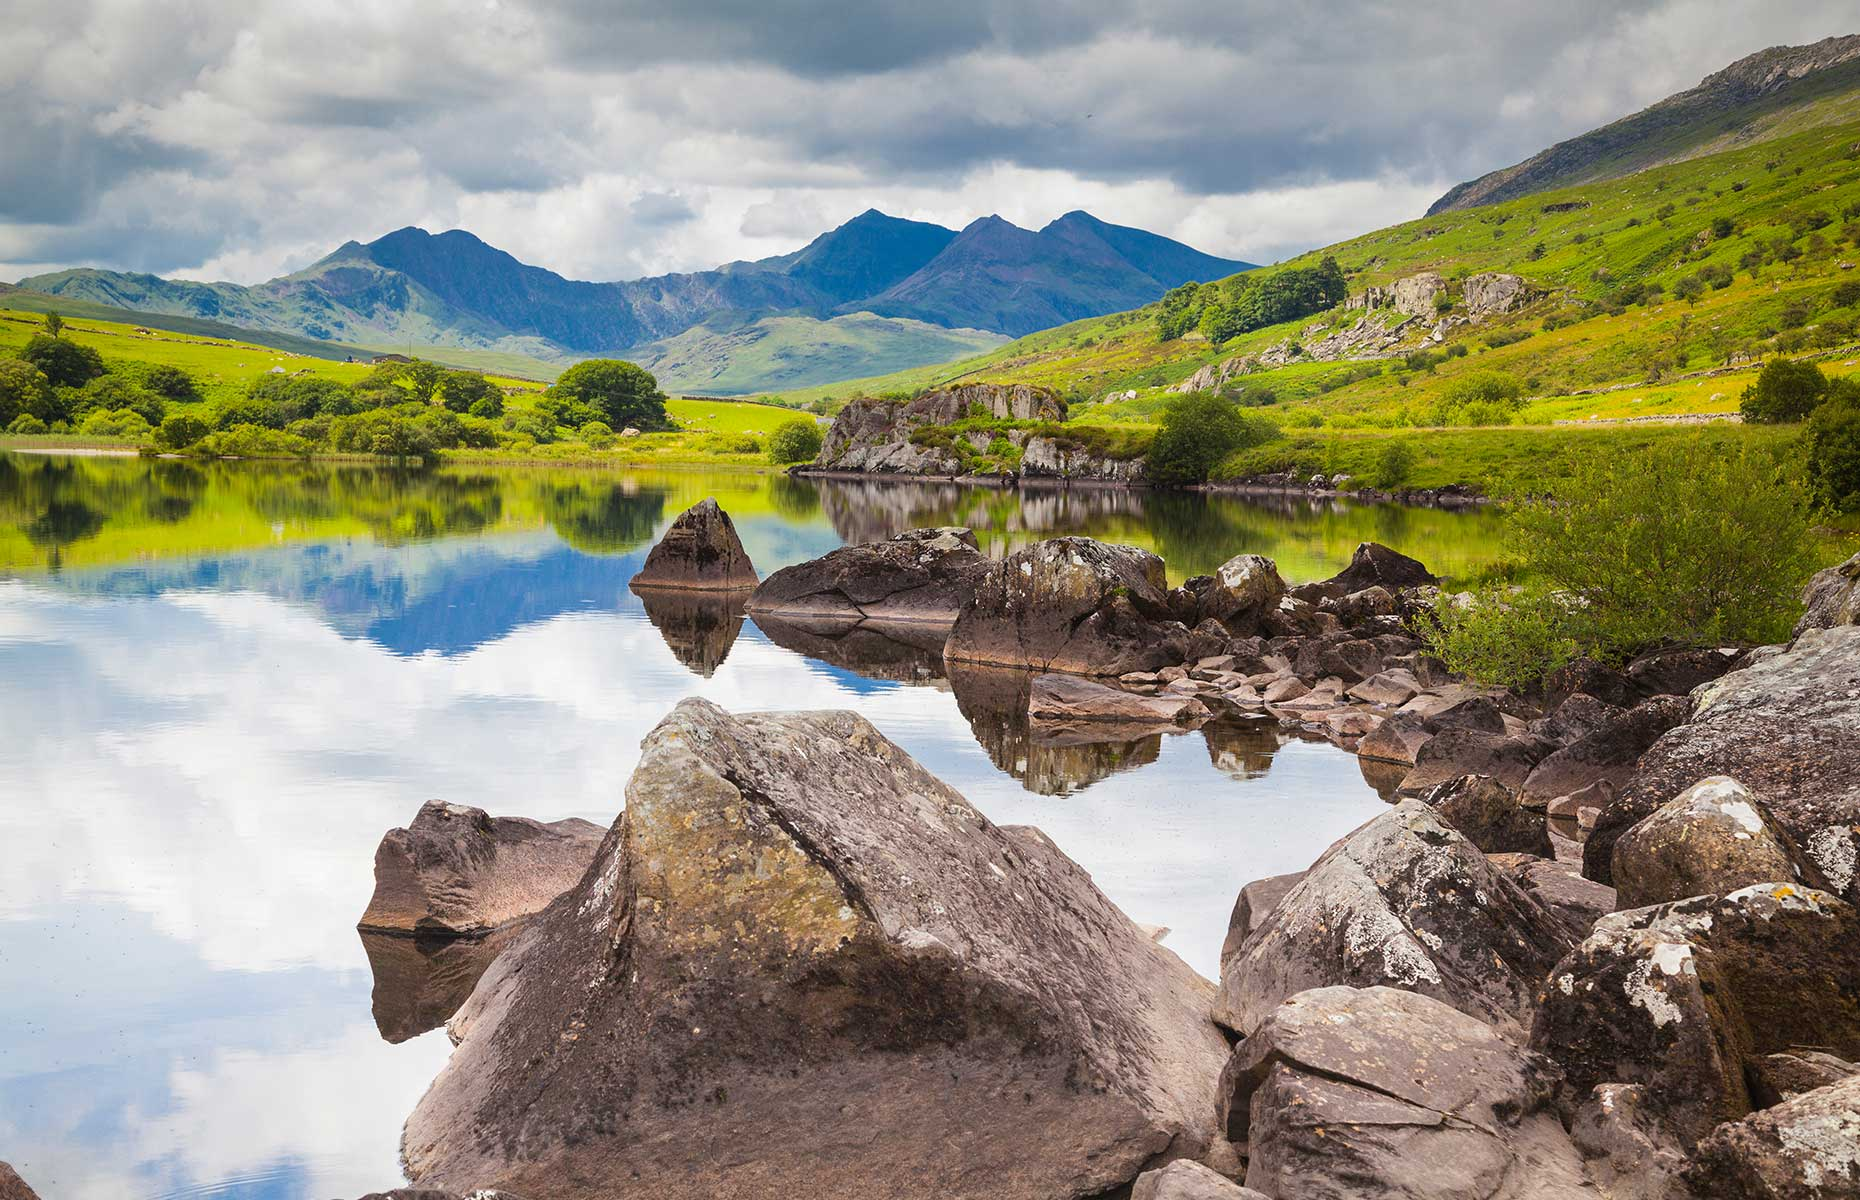 View towards Mount Snowdon, Wales